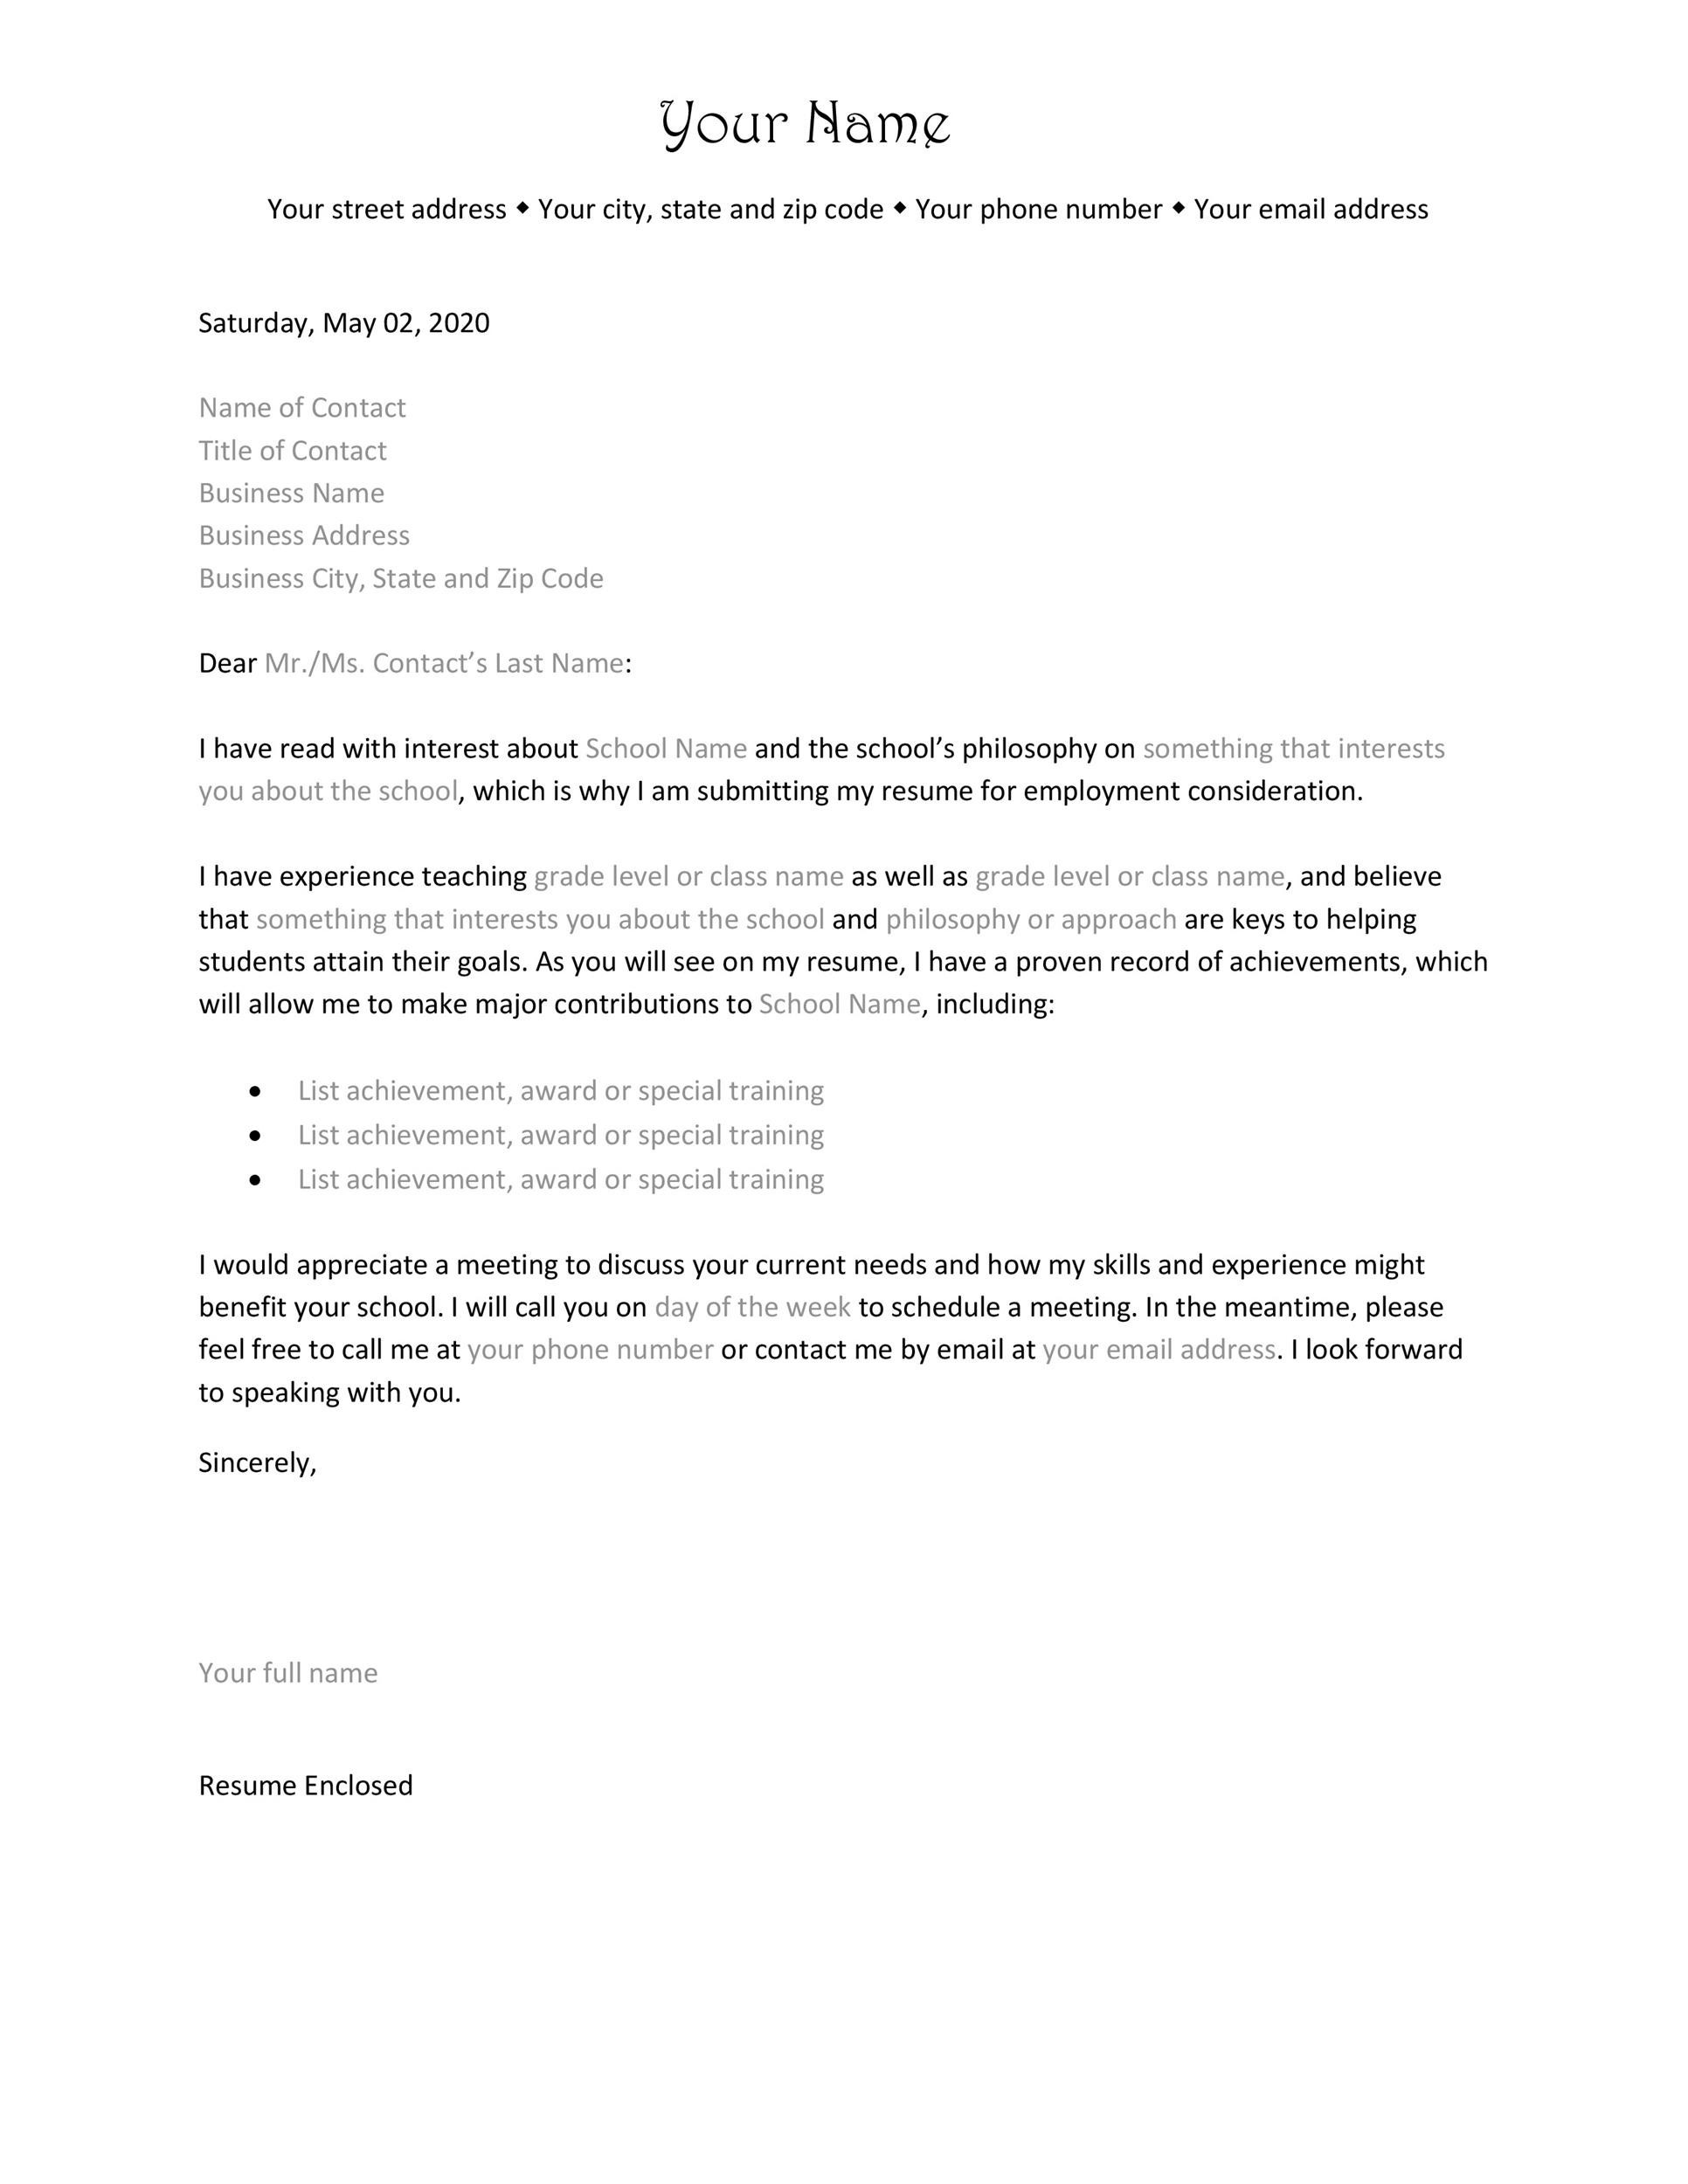 Sample Job Application Cover Letters 30 Amazing Letter Of Interest Samples Templates